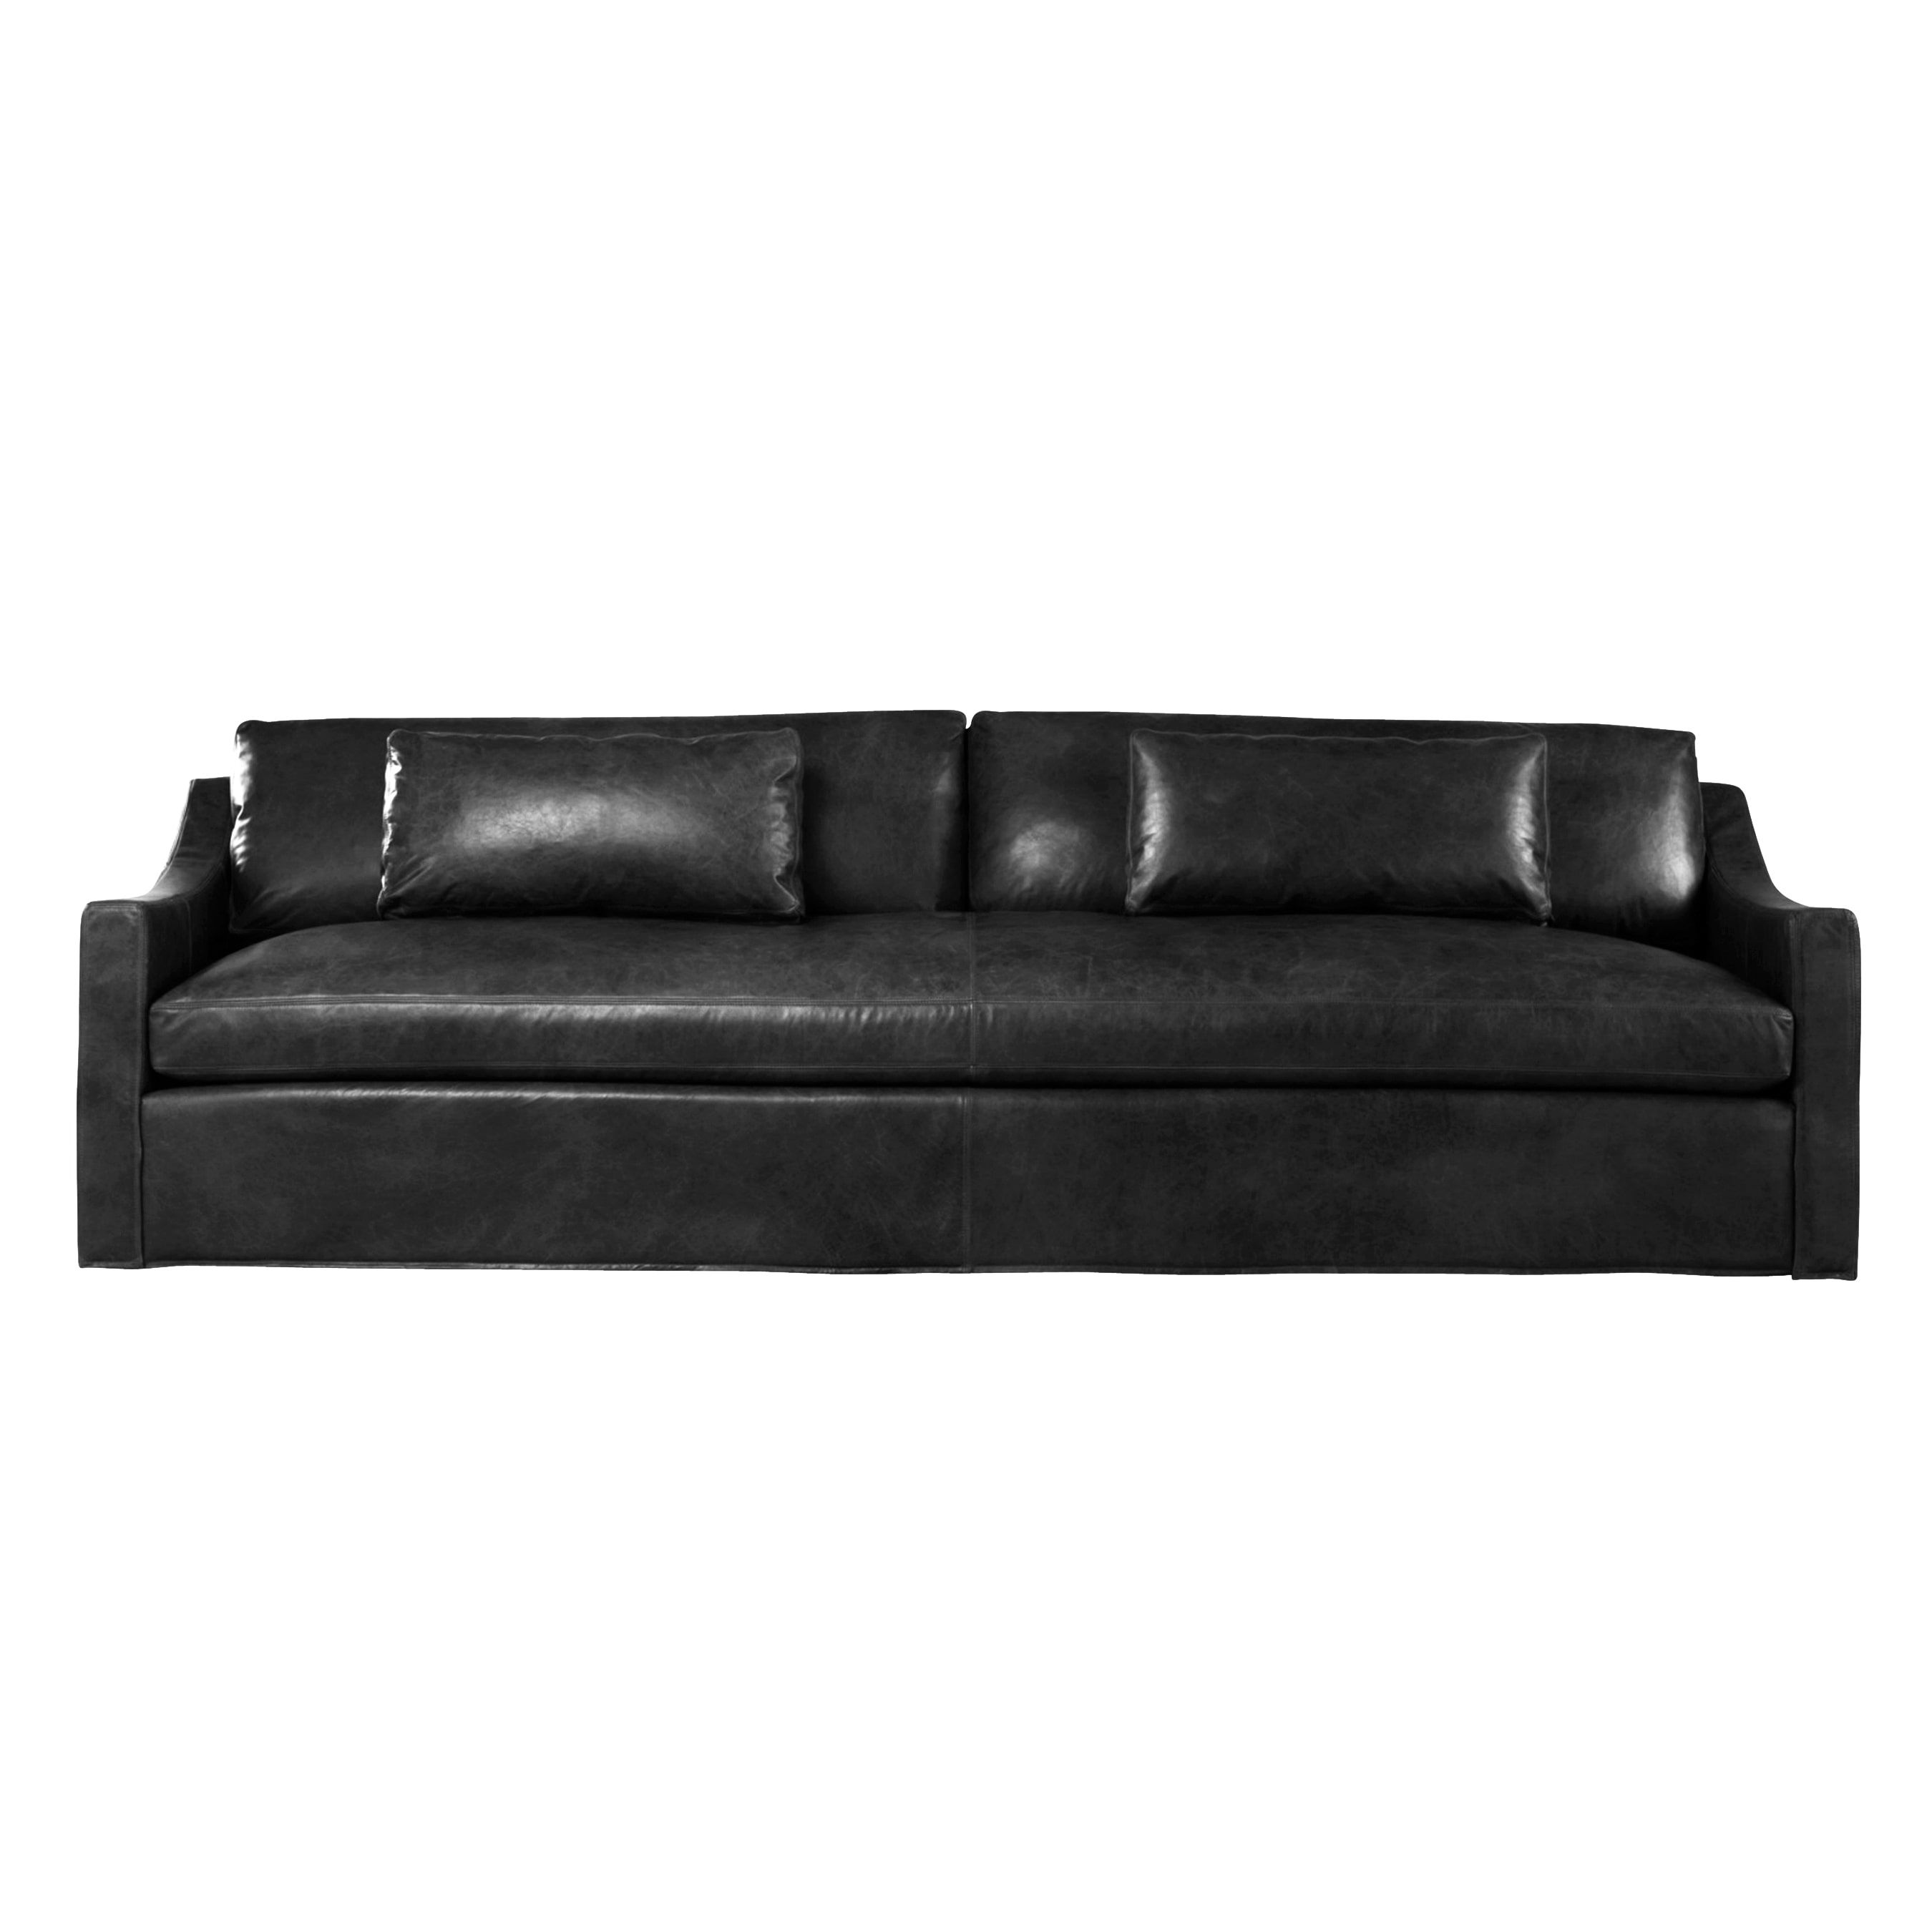 Groovy Duffy 7 Foot Extra Deep Black Or Brown Leather Made To Order Beatyapartments Chair Design Images Beatyapartmentscom